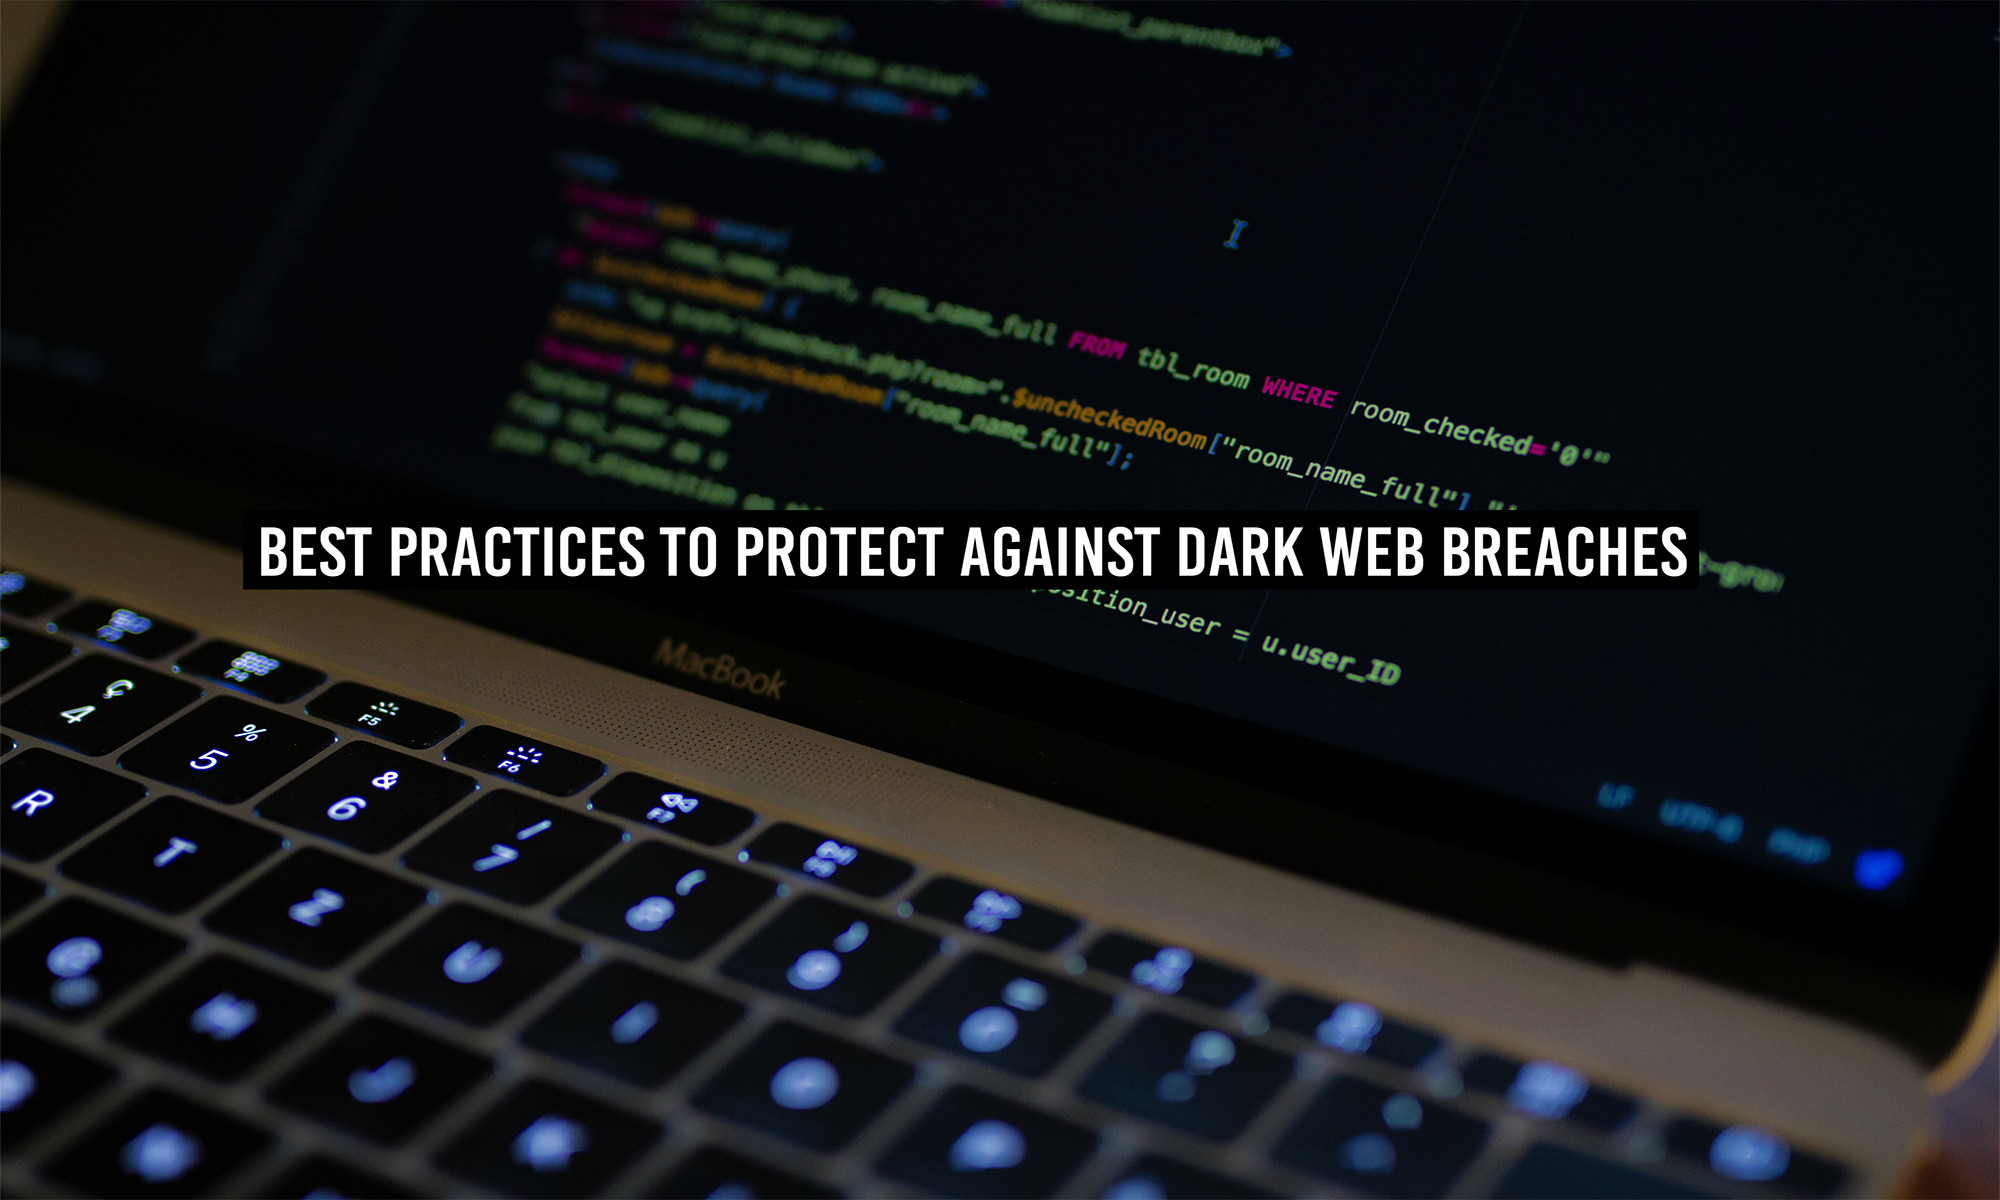 Best Practices to Protect Against Dark Web Breaches